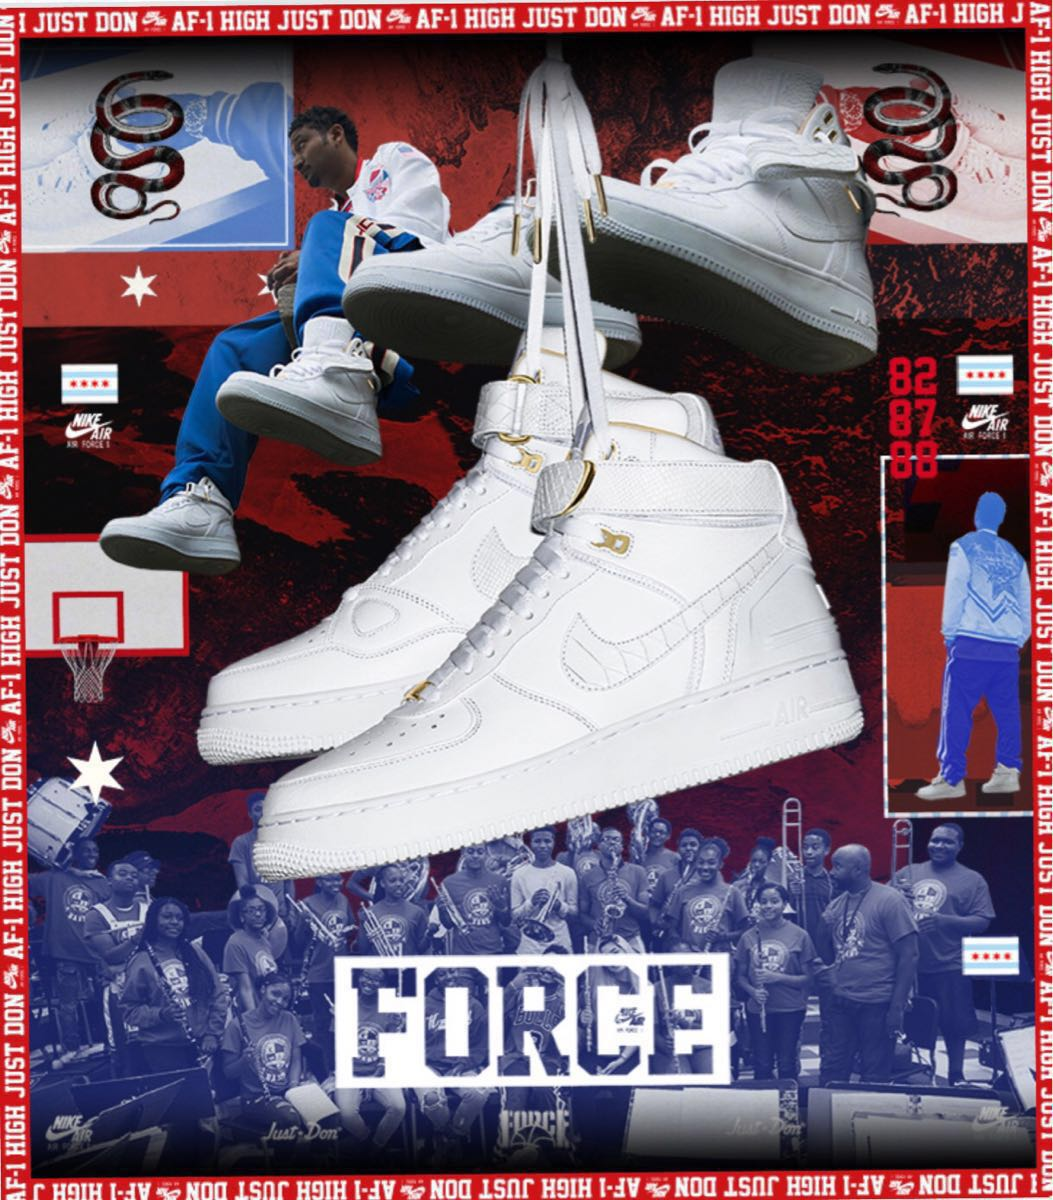 27.5cm 確実正規品 即発送可 Nike Air Force 1 High Just Don US9.5 Don C AO1074-100 ジャスト ドン 白 white ジャストドン